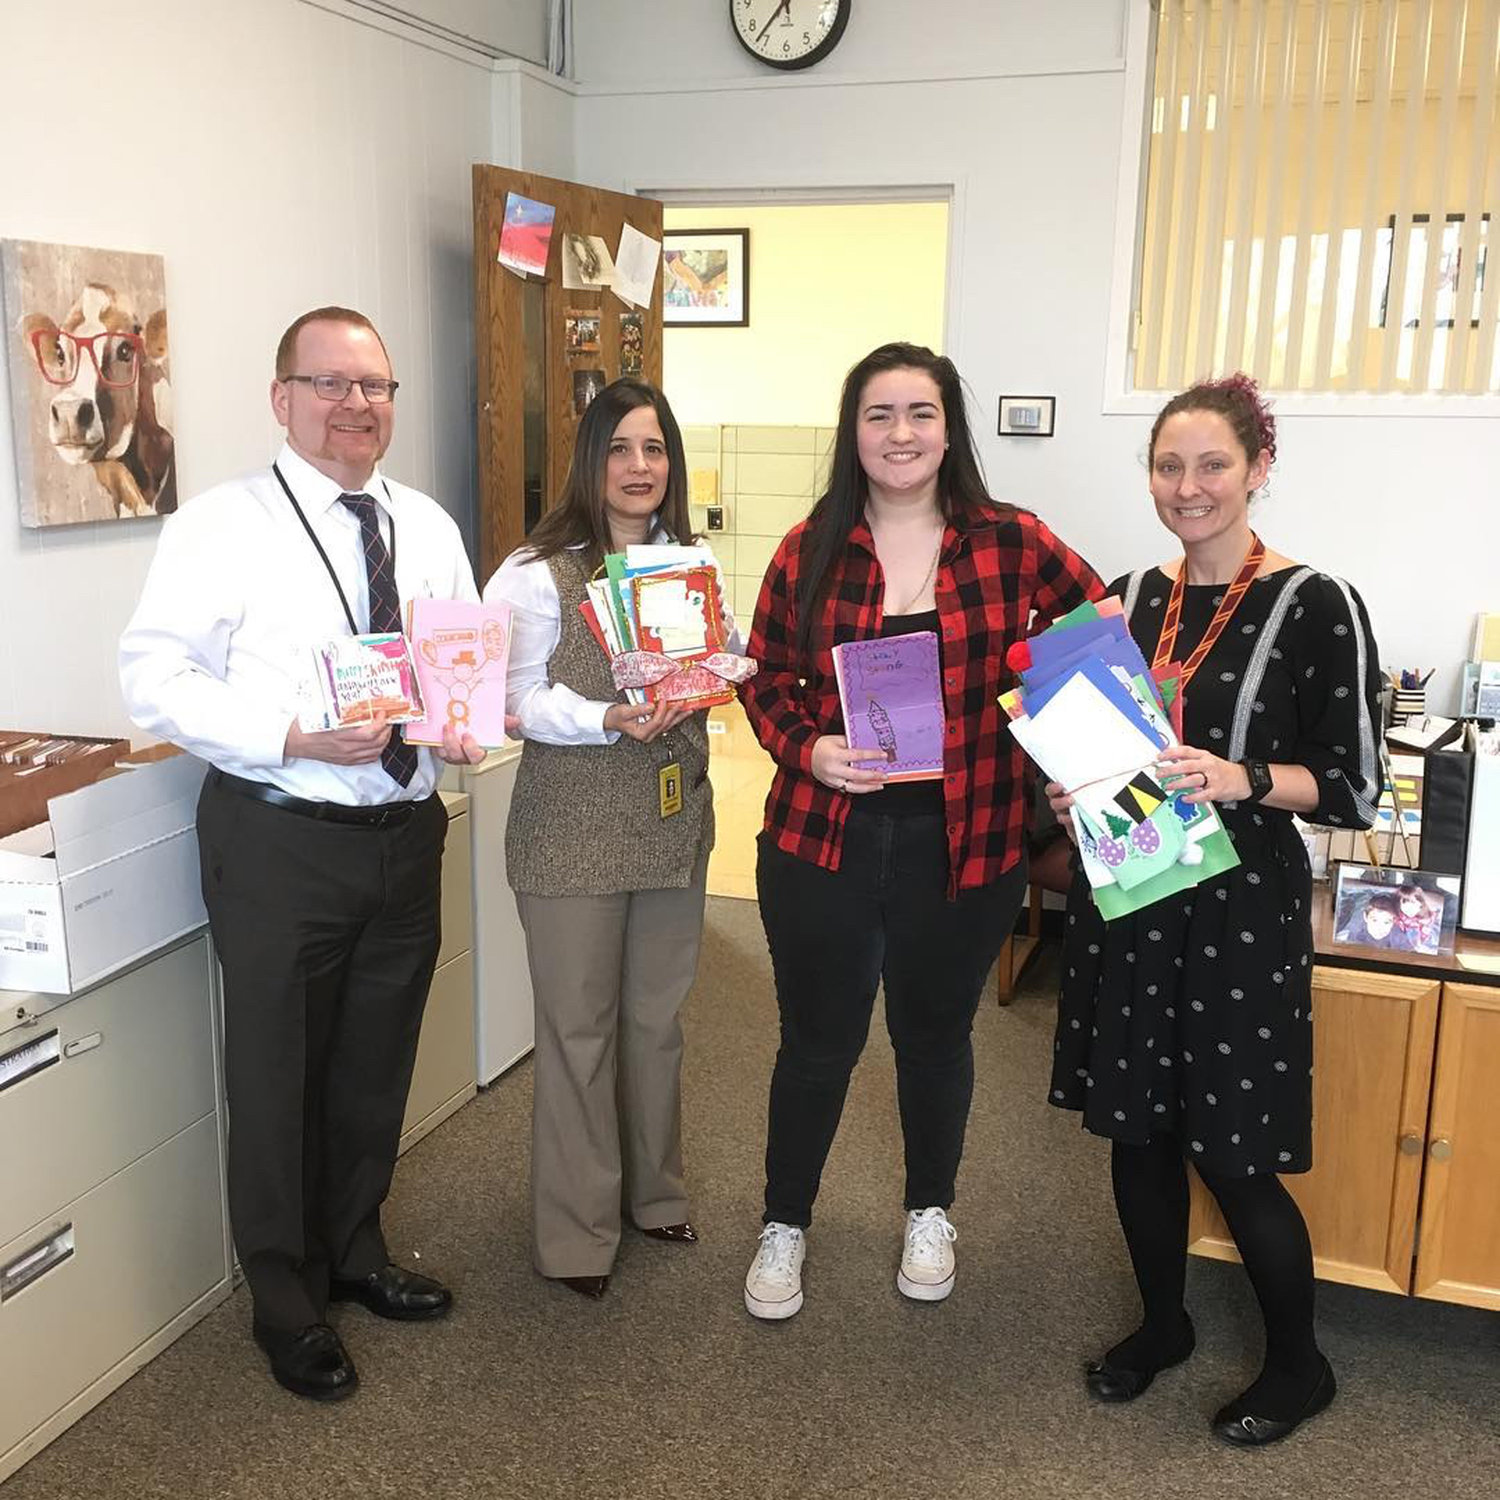 West Hempstead class of 2018 graduate Lauren Faulds, second from right, collected holiday cards made throughout the district on Dec. 14 to deliver personally to Maddox Hyde in Pittsburgh.